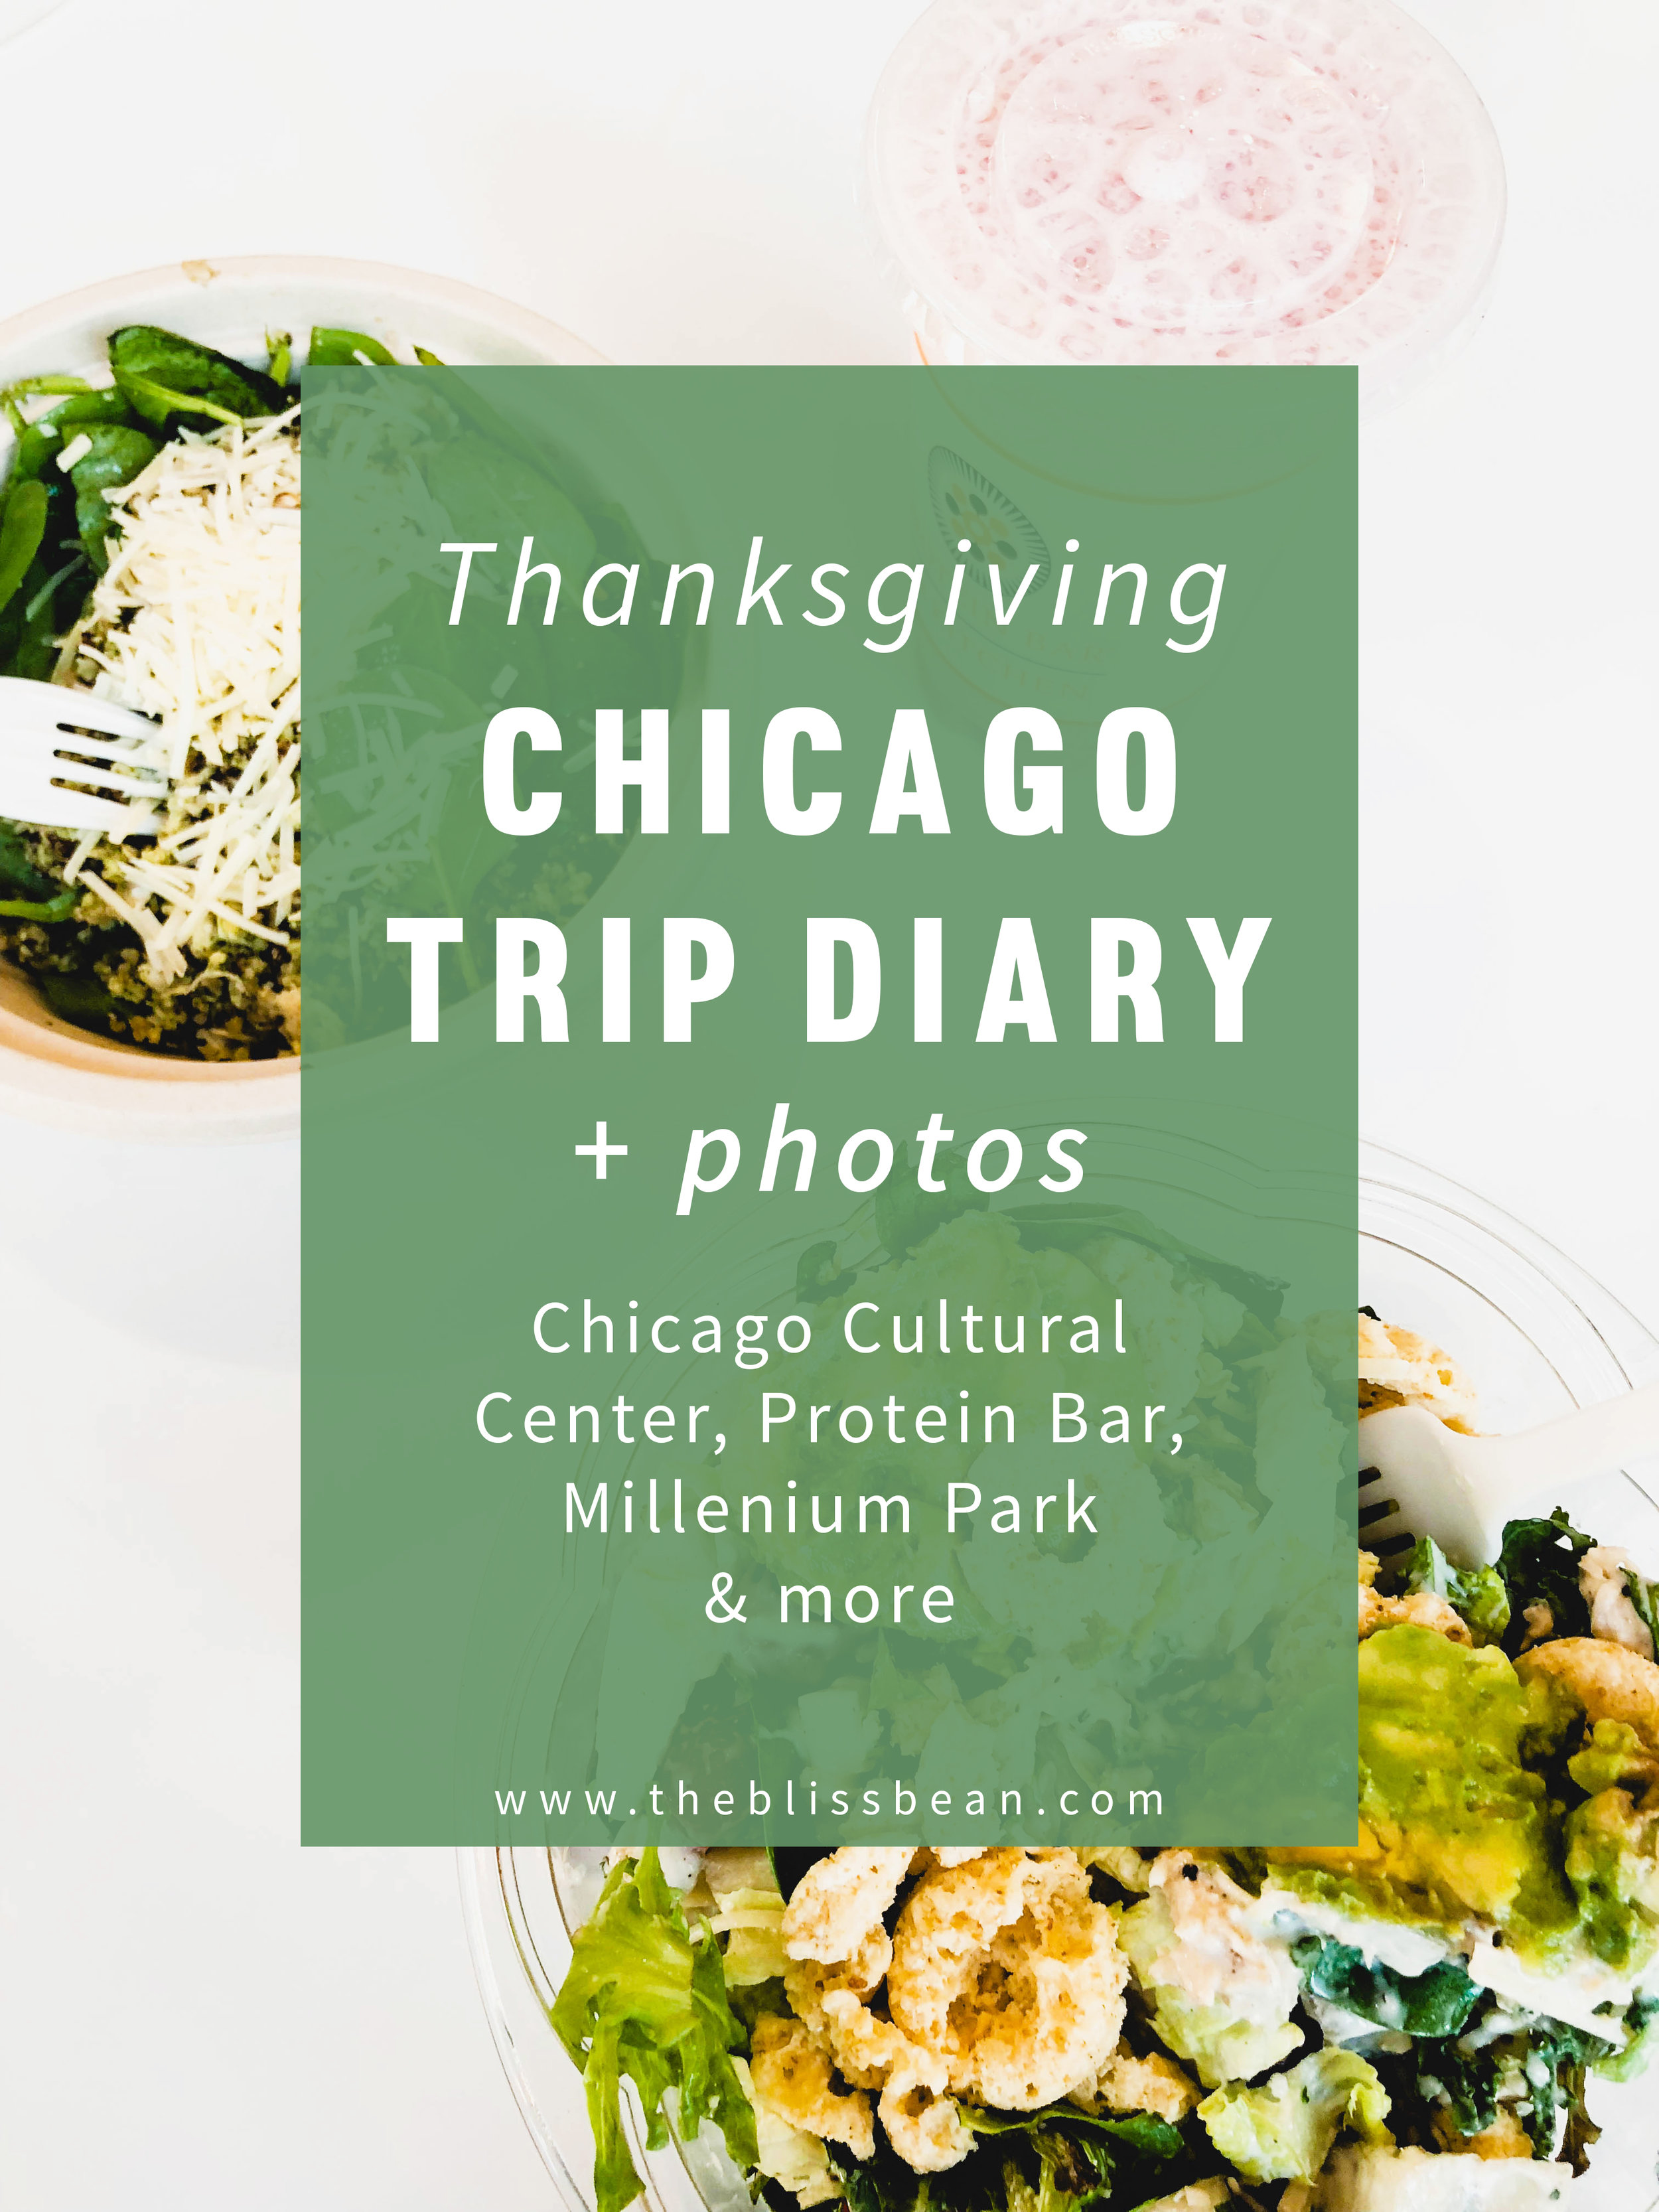 Chicago Thanksgiving Trip Diary Cover Photo.jpg